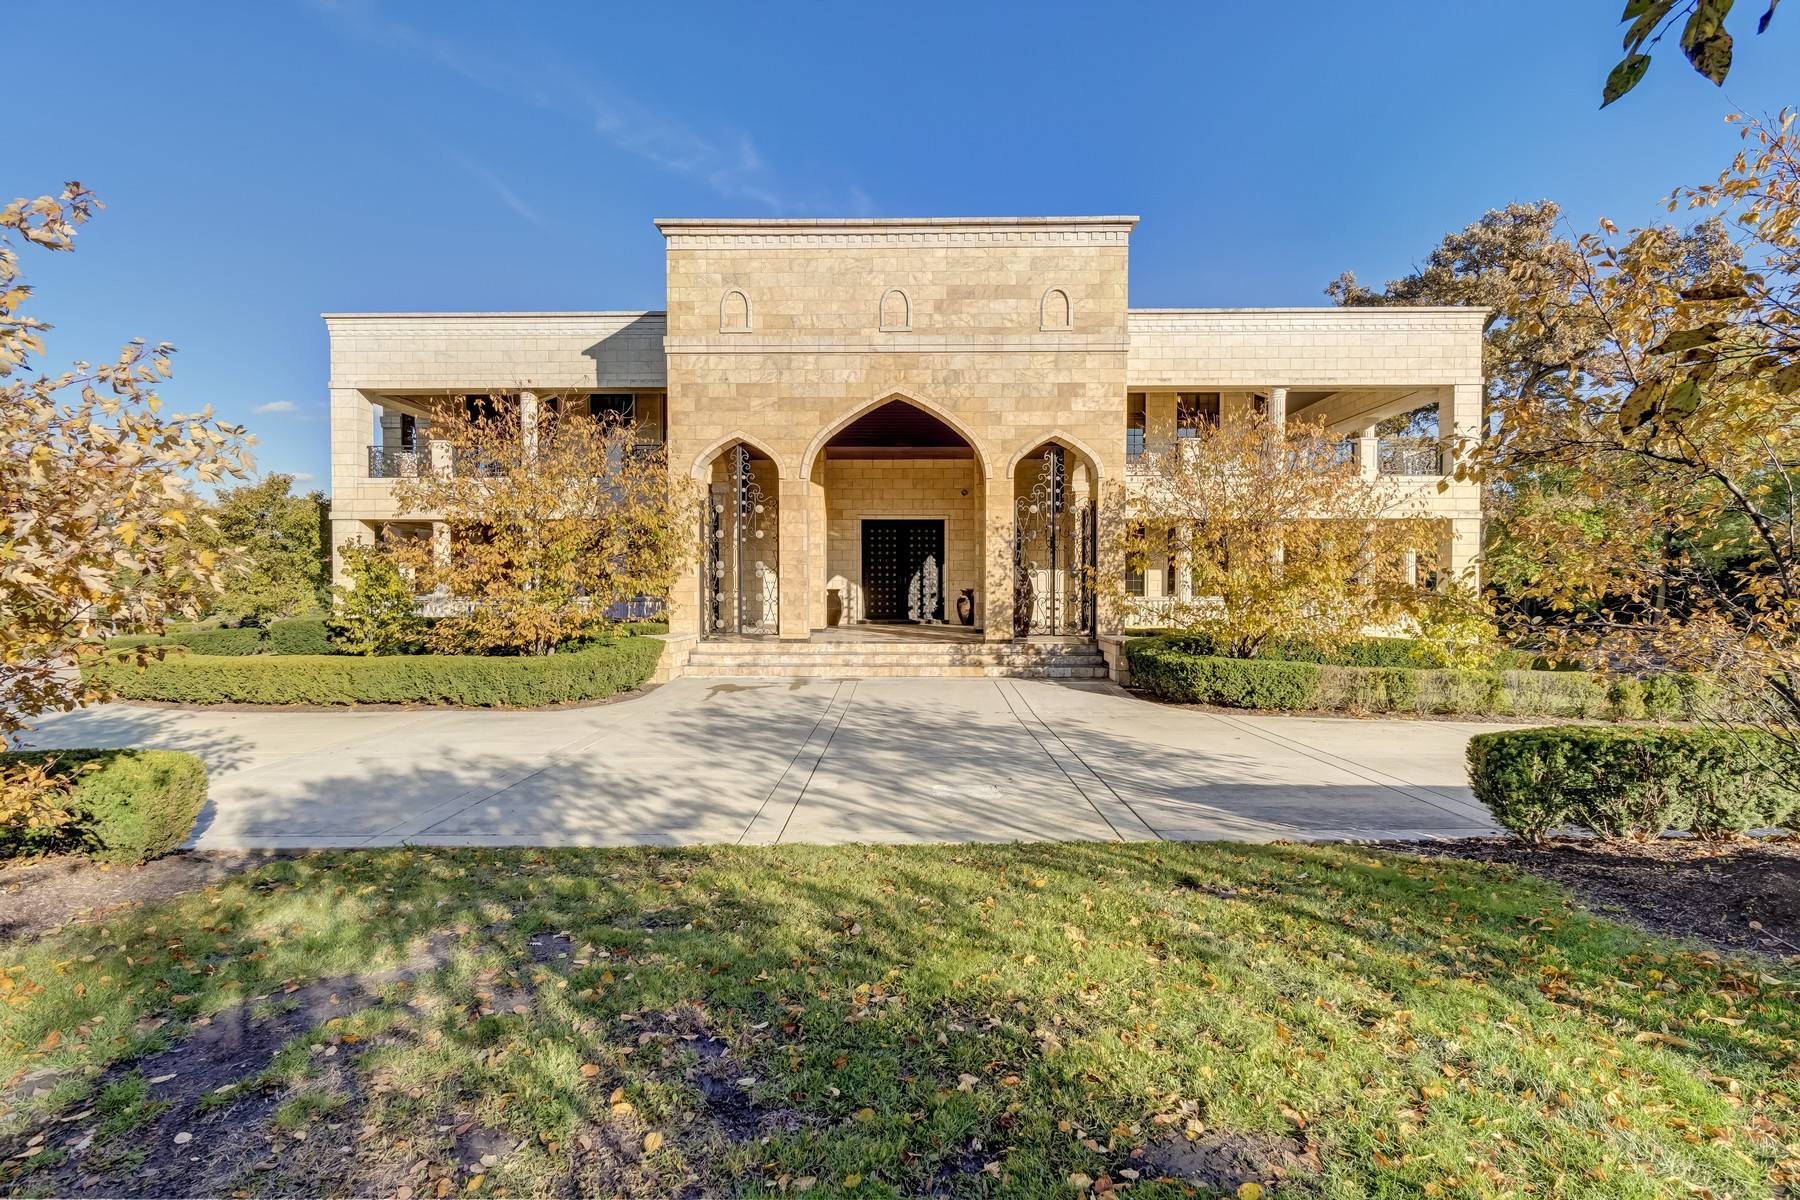 Single Family Homes for Active at An Exquisite Mansion Awaits You 6501 S County Line Road Burr Ridge, Illinois 60527 United States